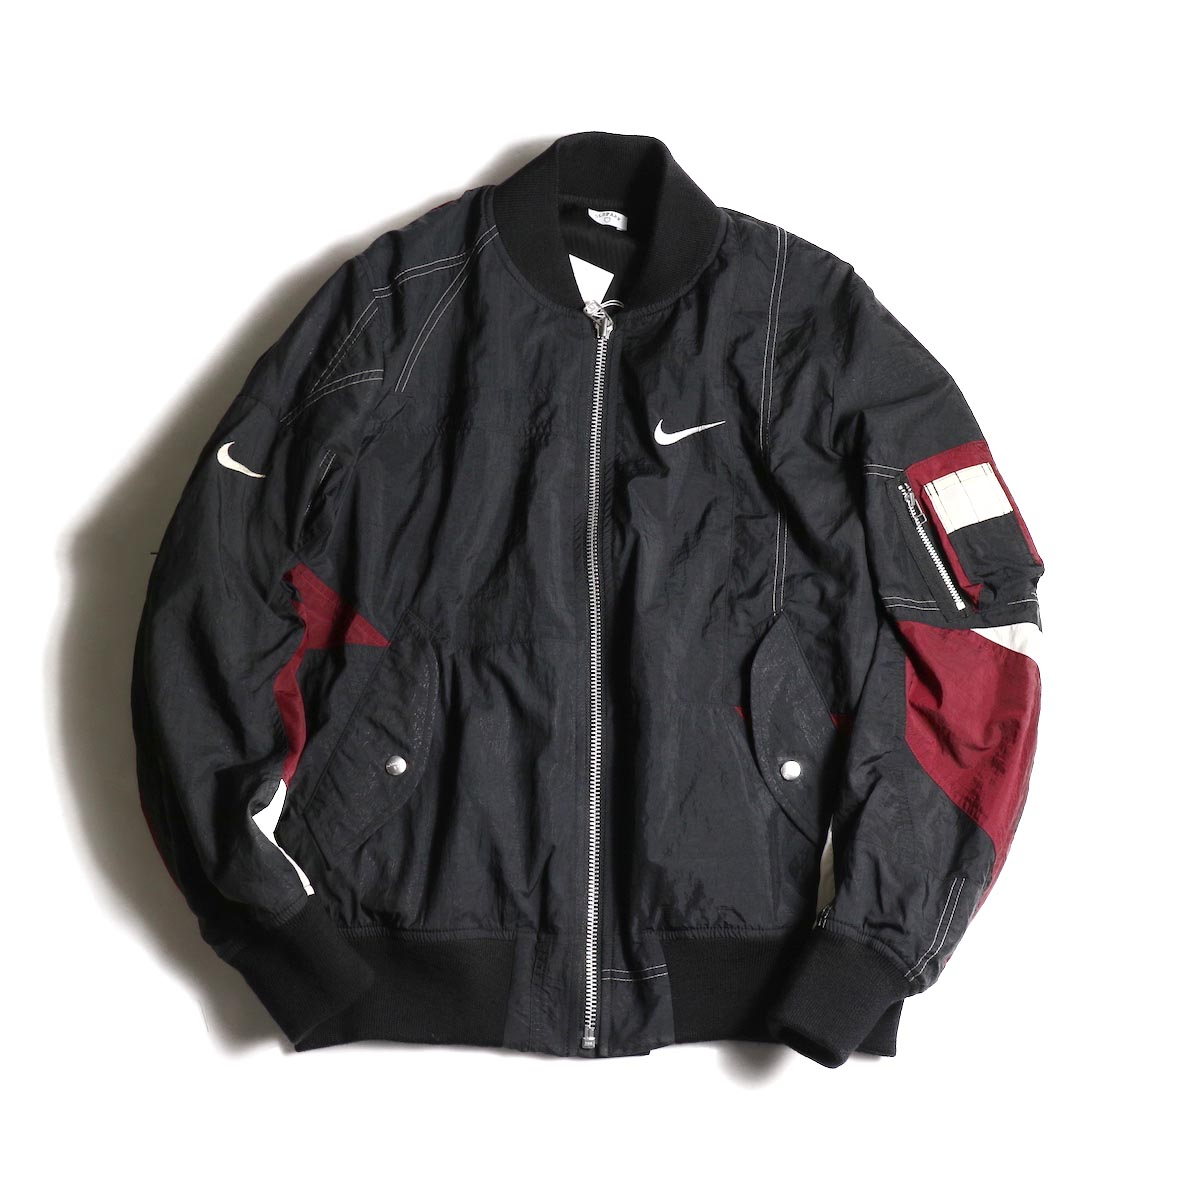 OLD PARK / Flight Jacket Sports Nike (L size)